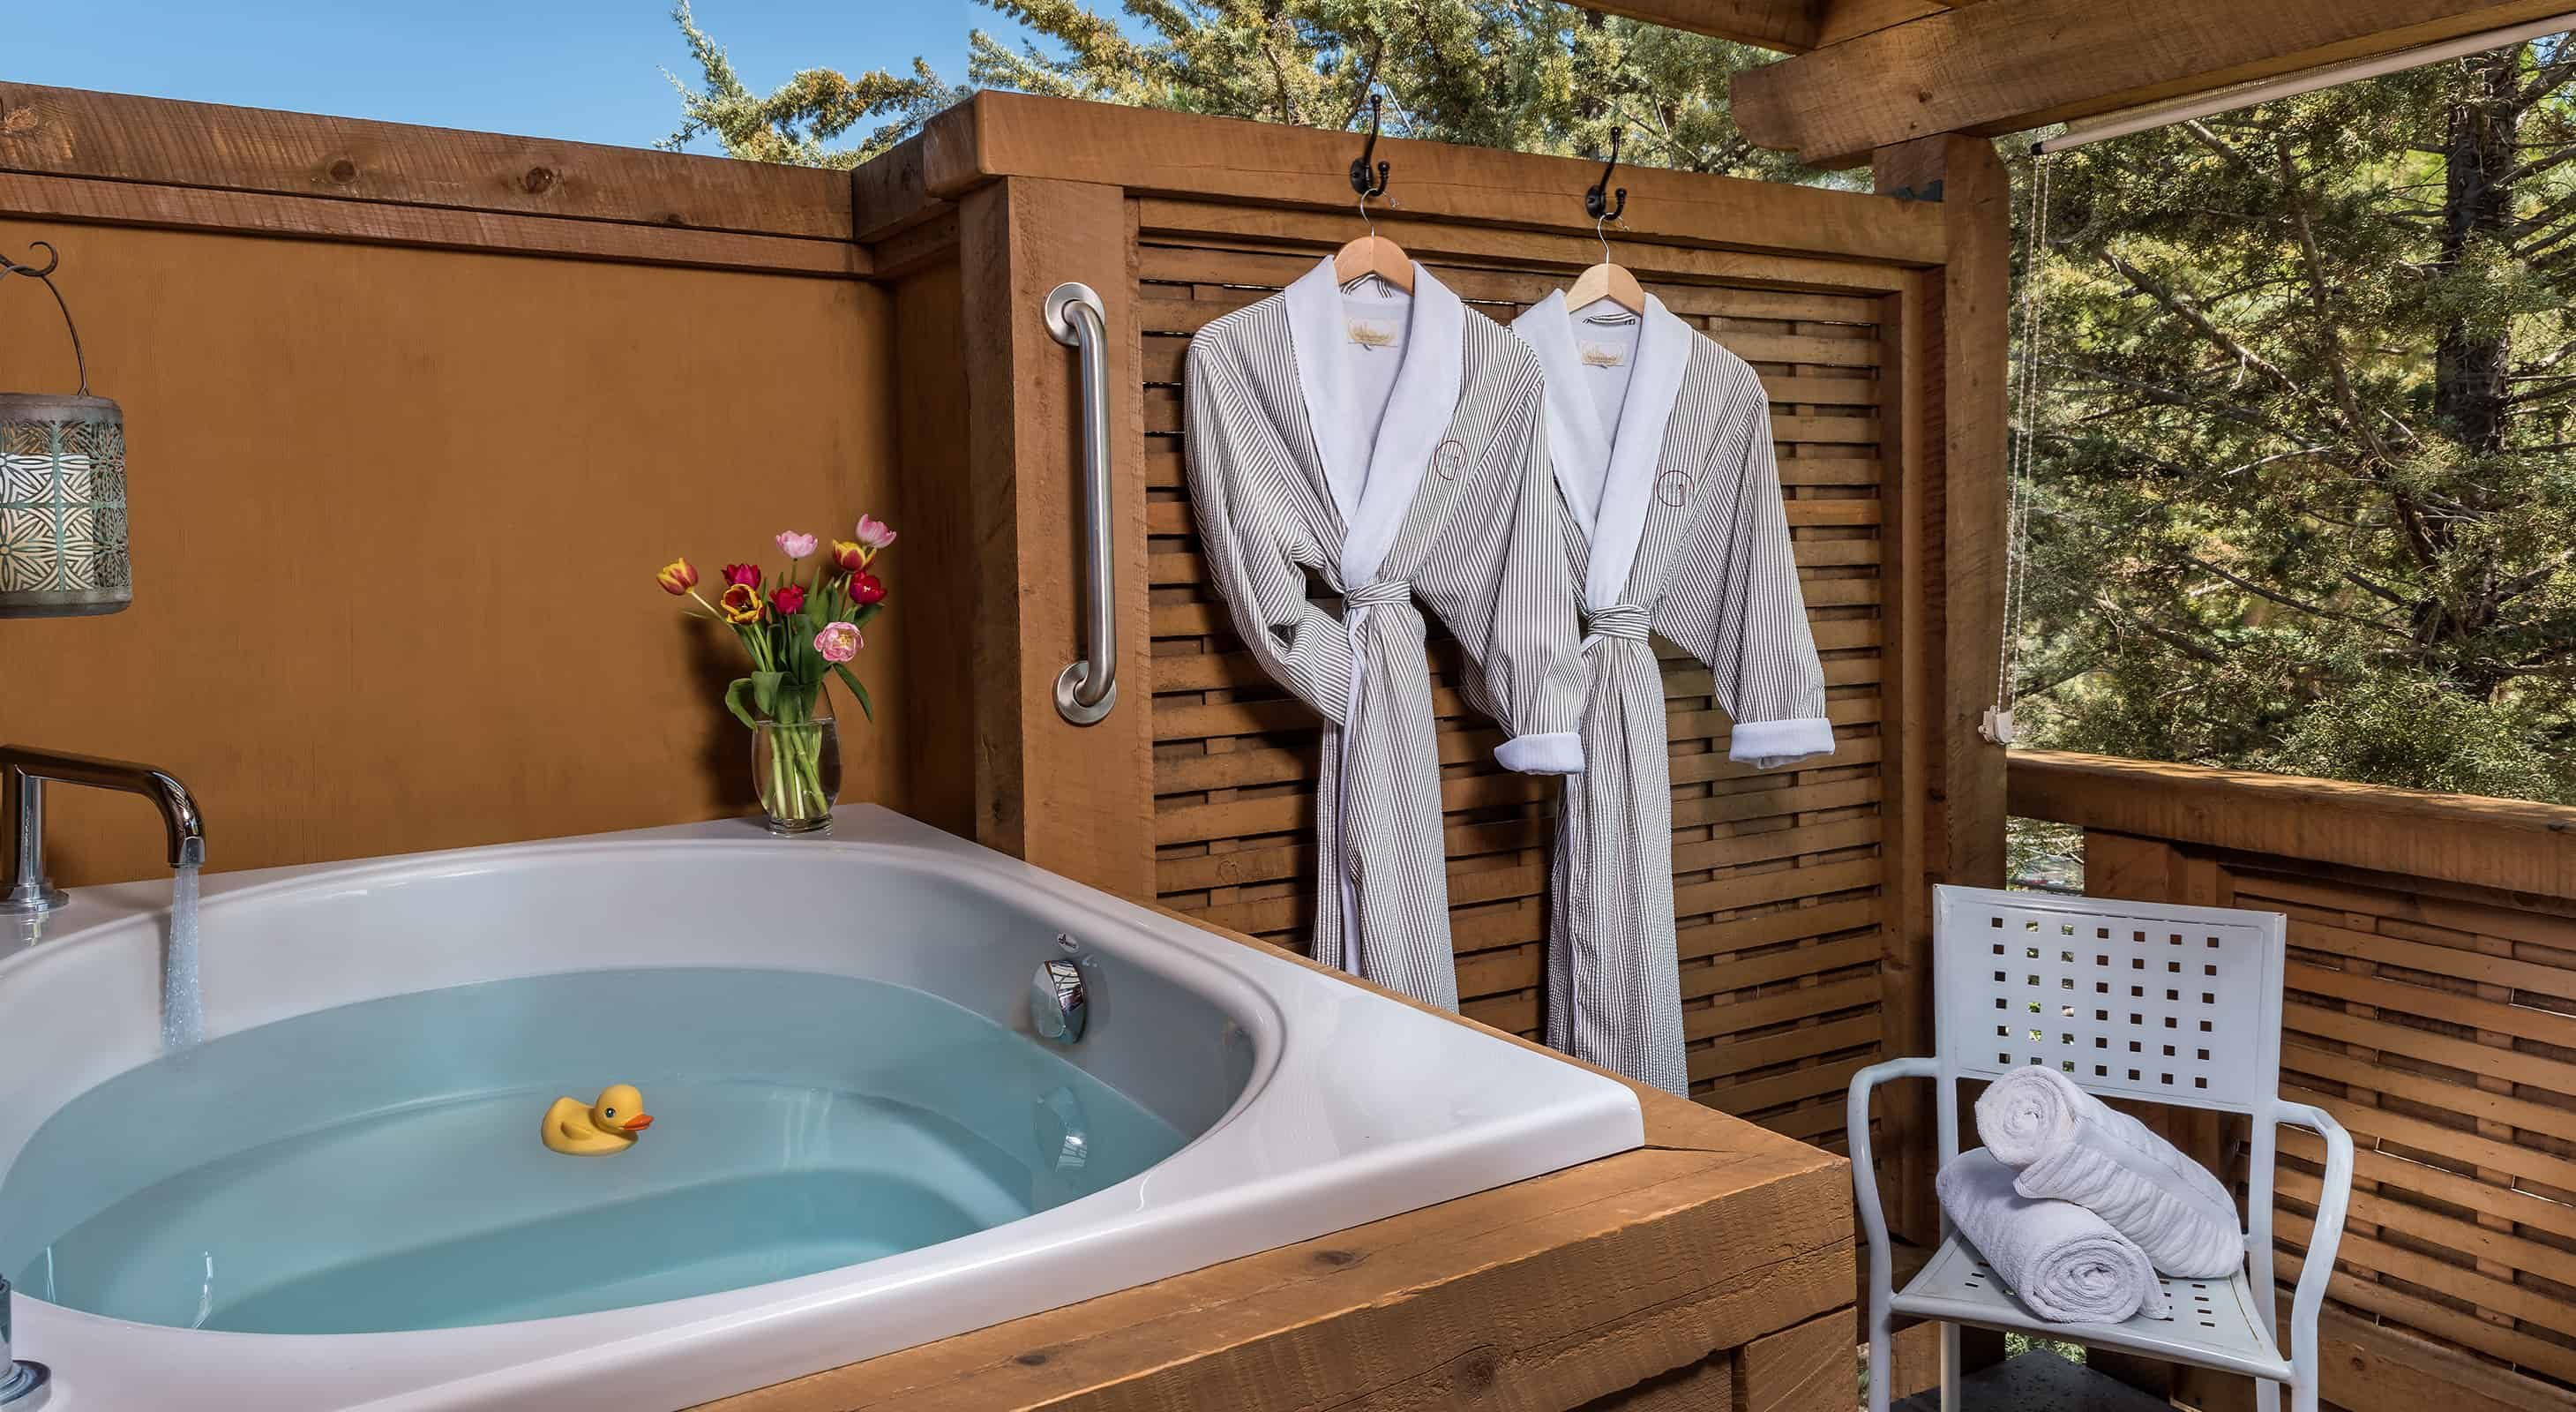 Outdoor soaking tub with two bathrobes